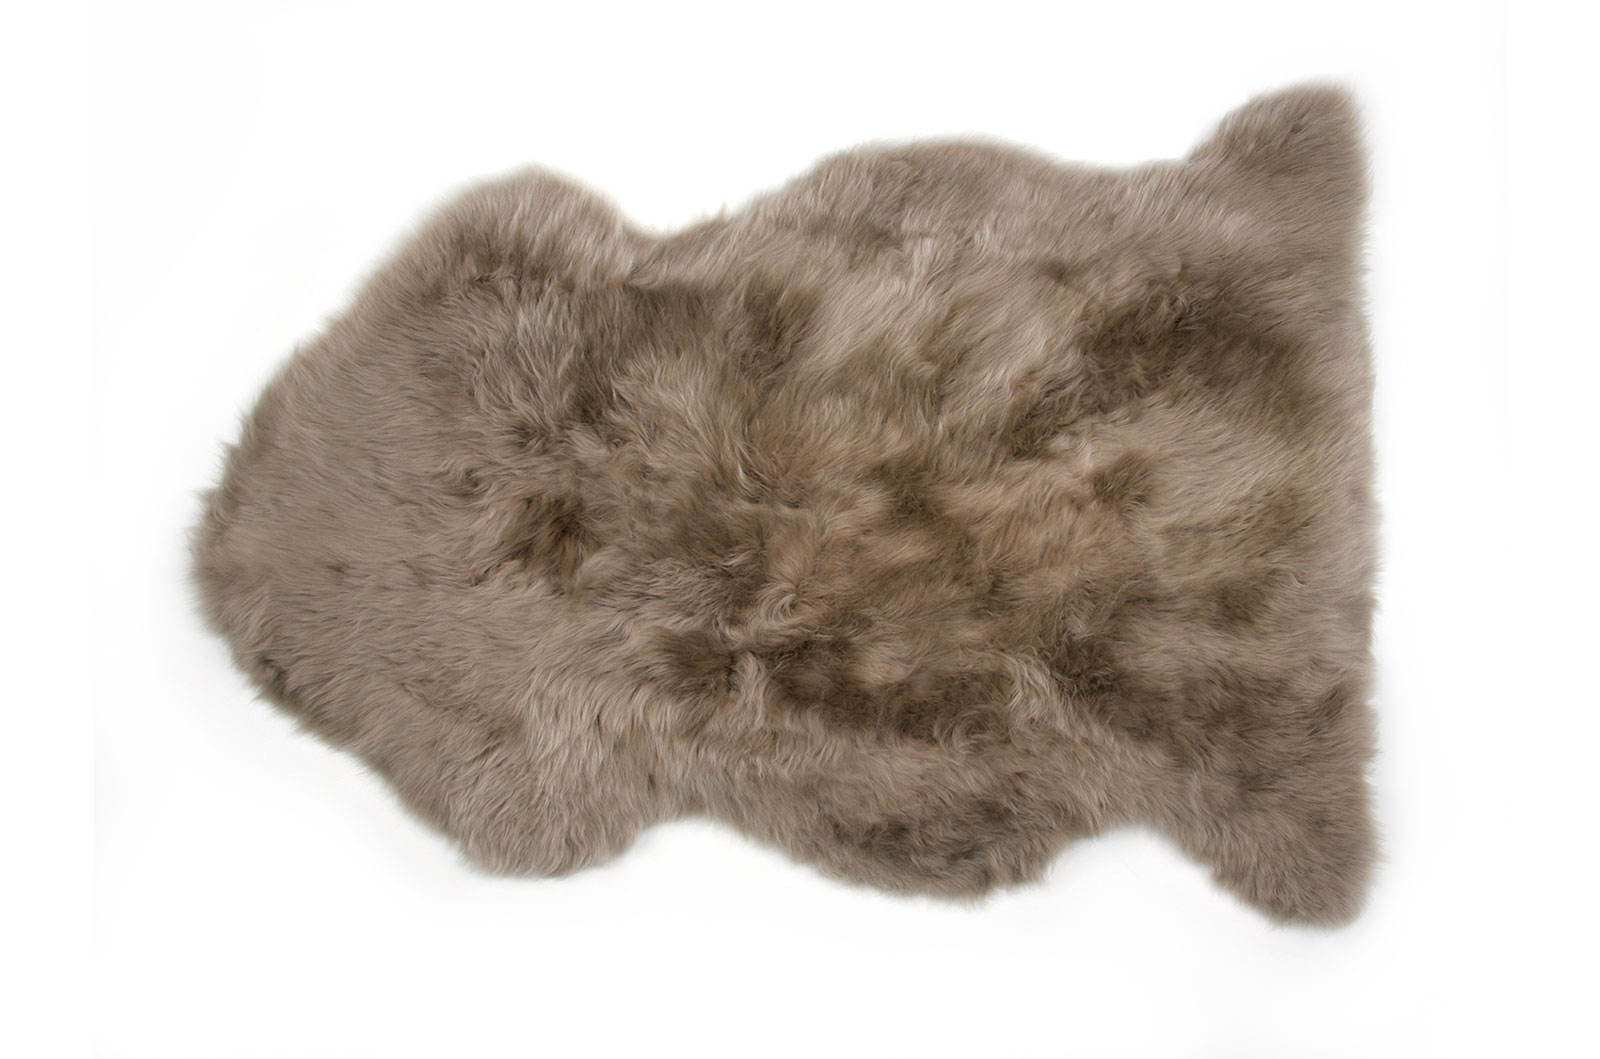 only at clean habitat cream buy care instructions medium sheepskin large now skin x sheep dry uk rug